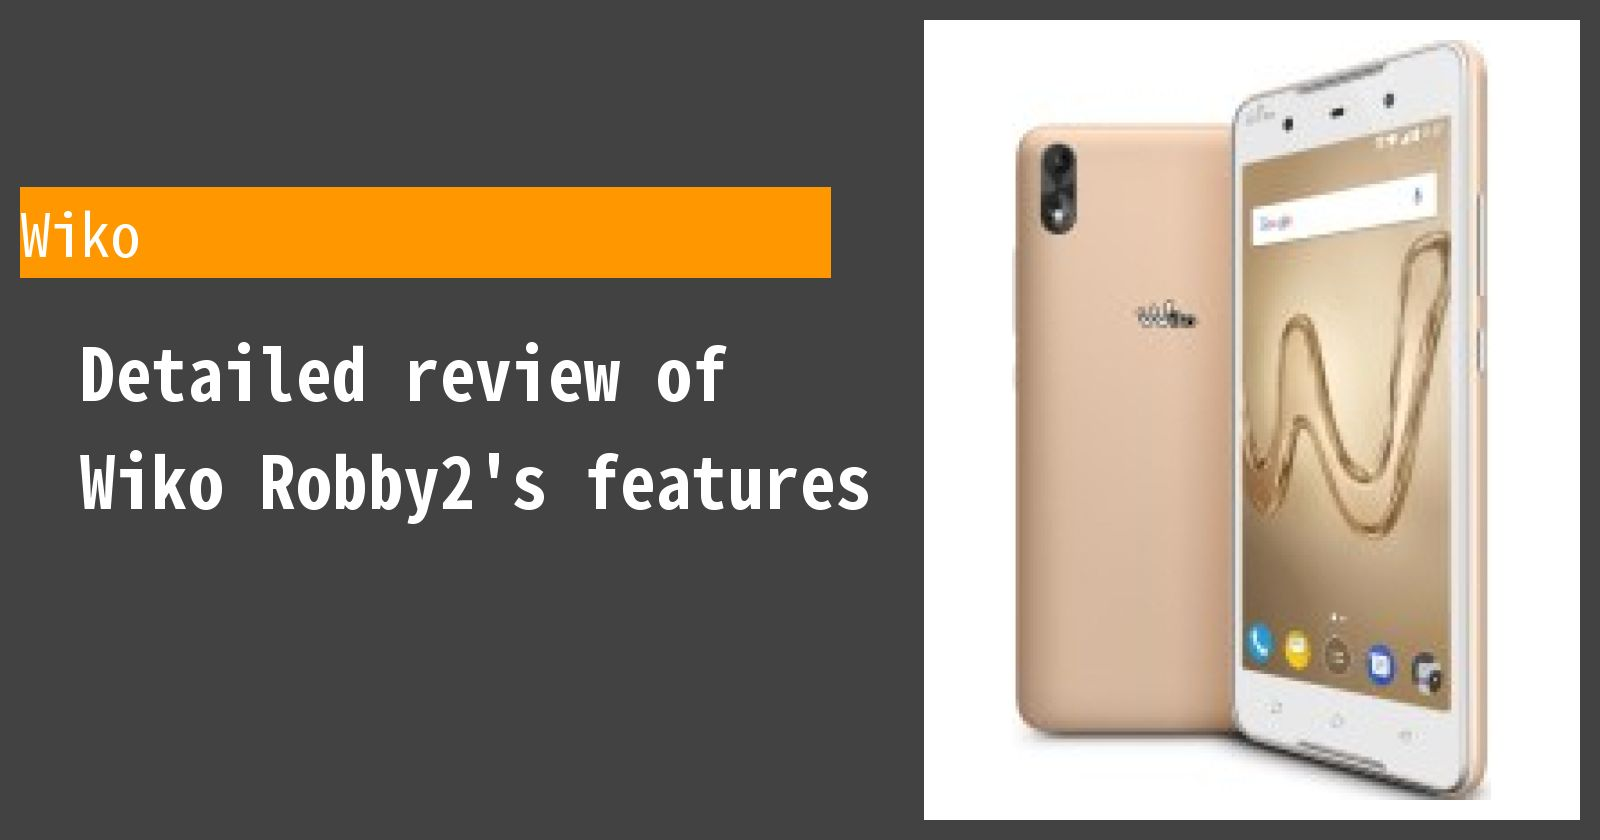 Detailed review of Wiko Robby2's features